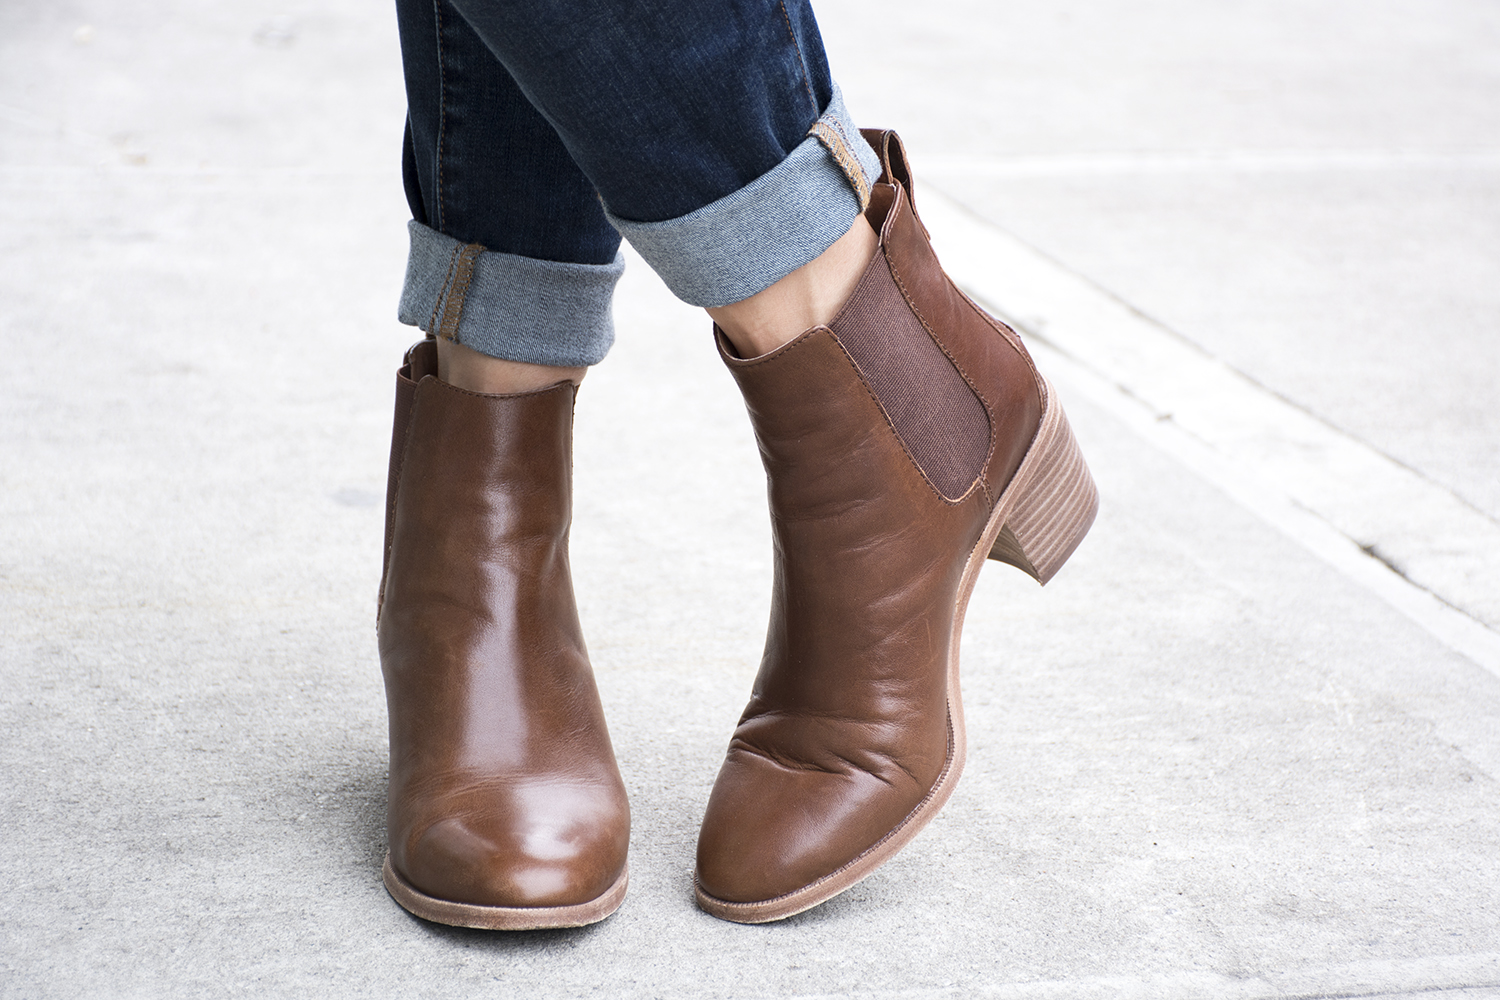 03nyc-newyork-city-madewell-leather-boots-travel-fashion-style